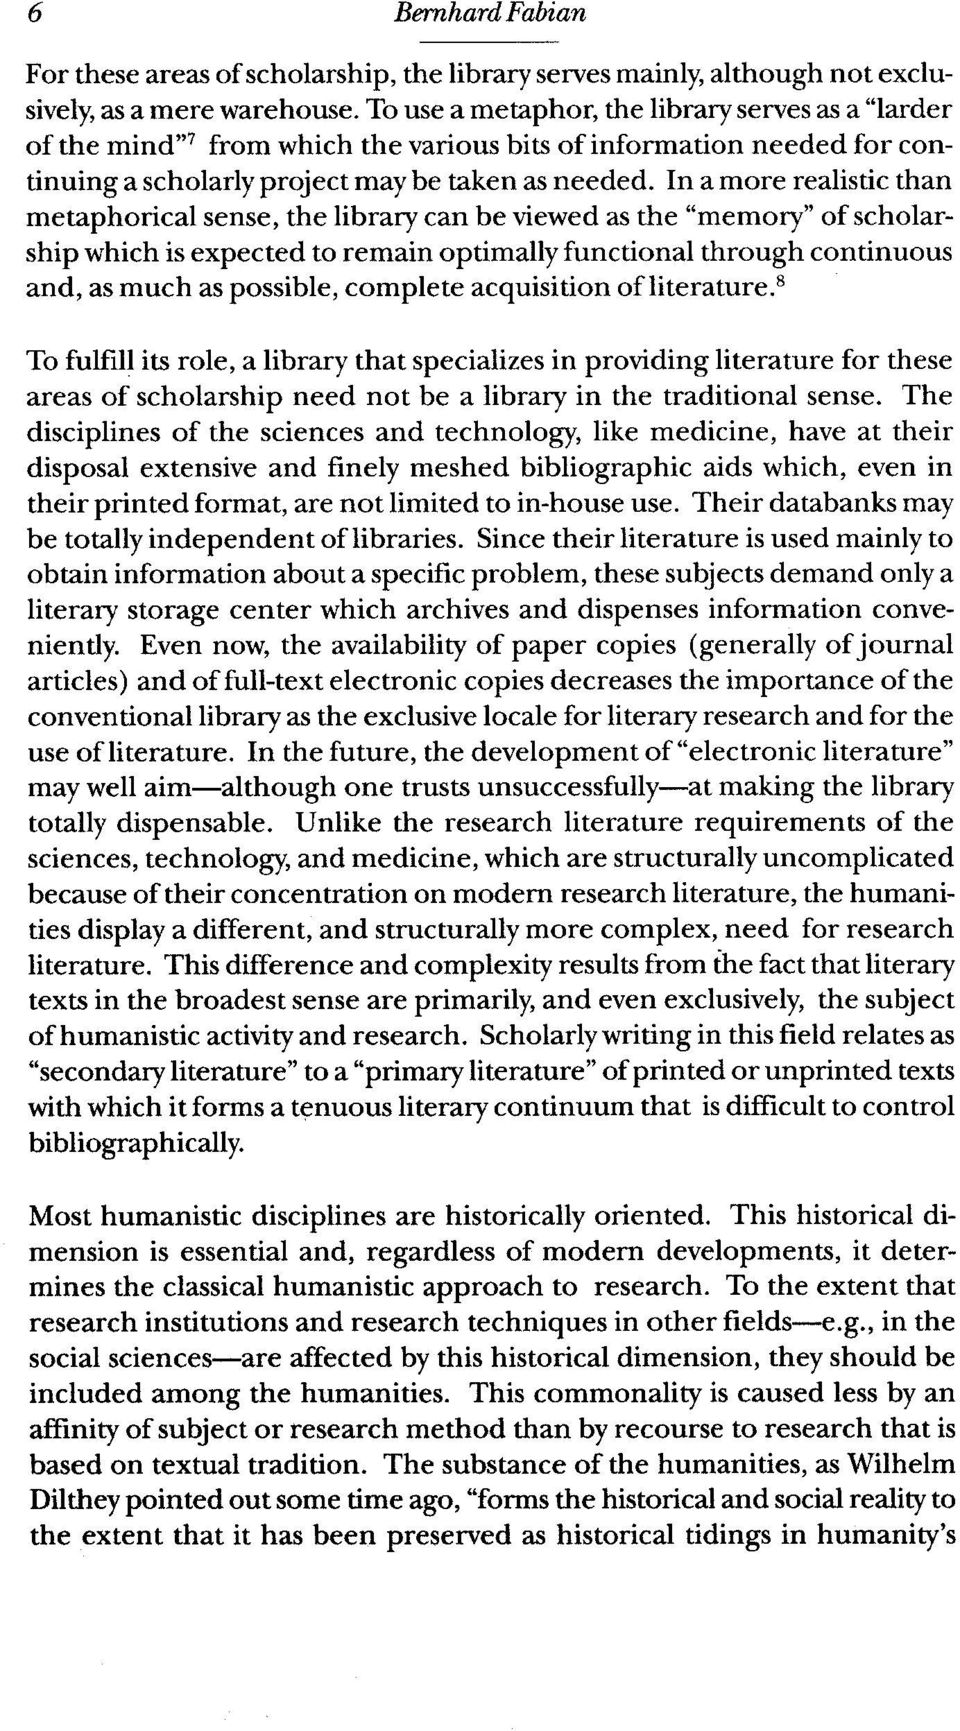 "In a more realistic than metaphorical sense, the library can be viewed as the ""memory"" of scholarship which is expected to remain optimally functional through continuous and, as much as possible,"